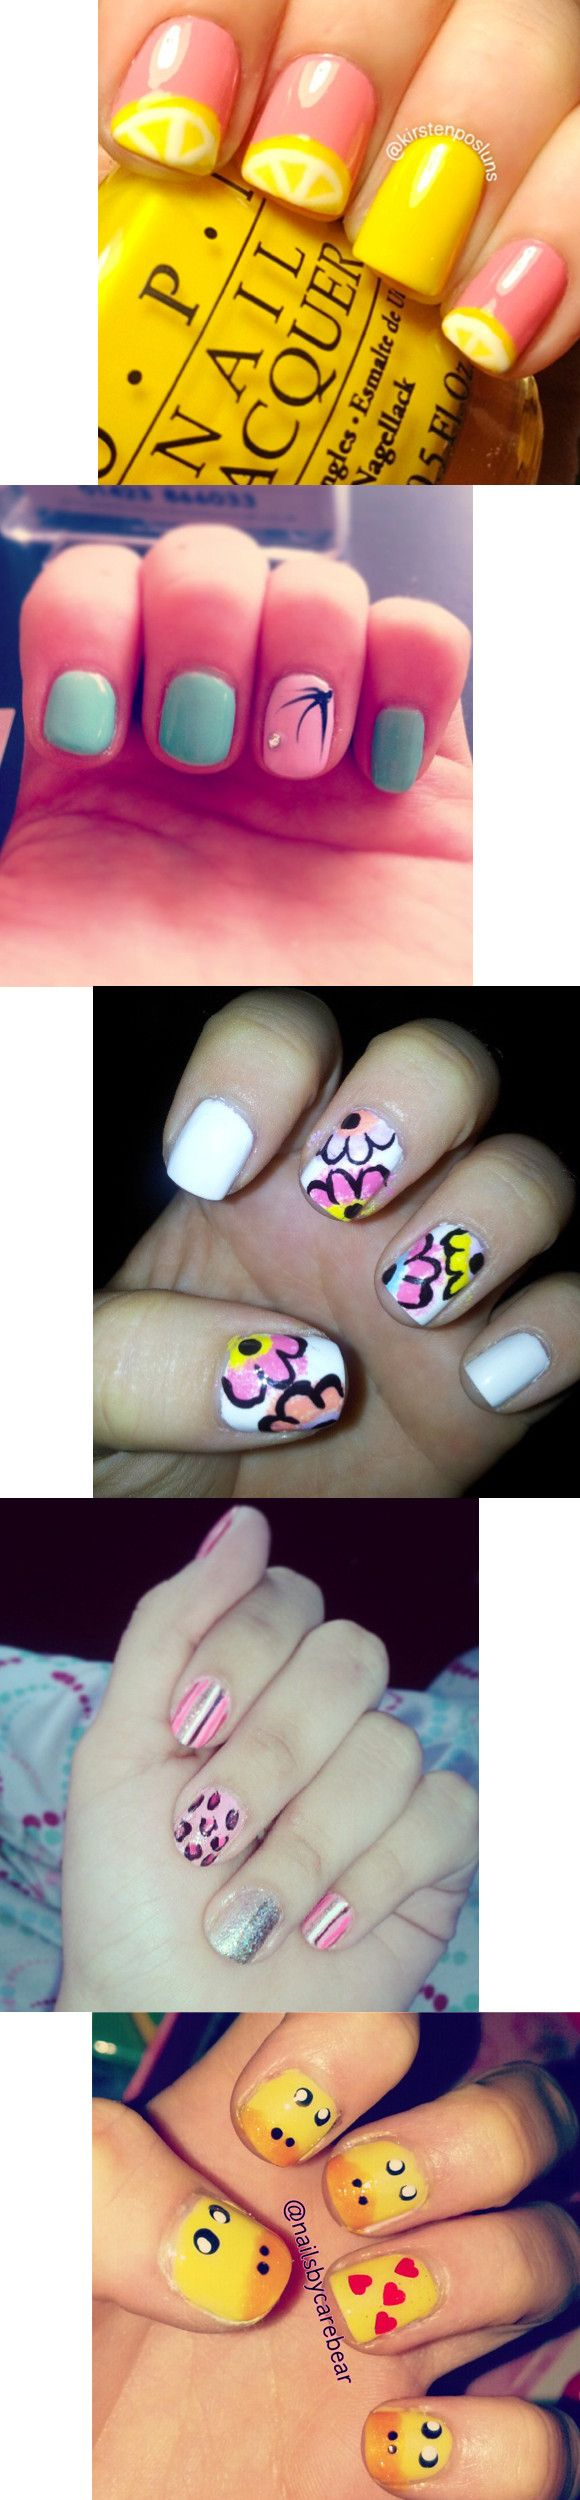 About baby boomer nail art tutorial by nded on pinterest nail art - Check Out This Collection Of Flowery Bright And Playful Nail Art